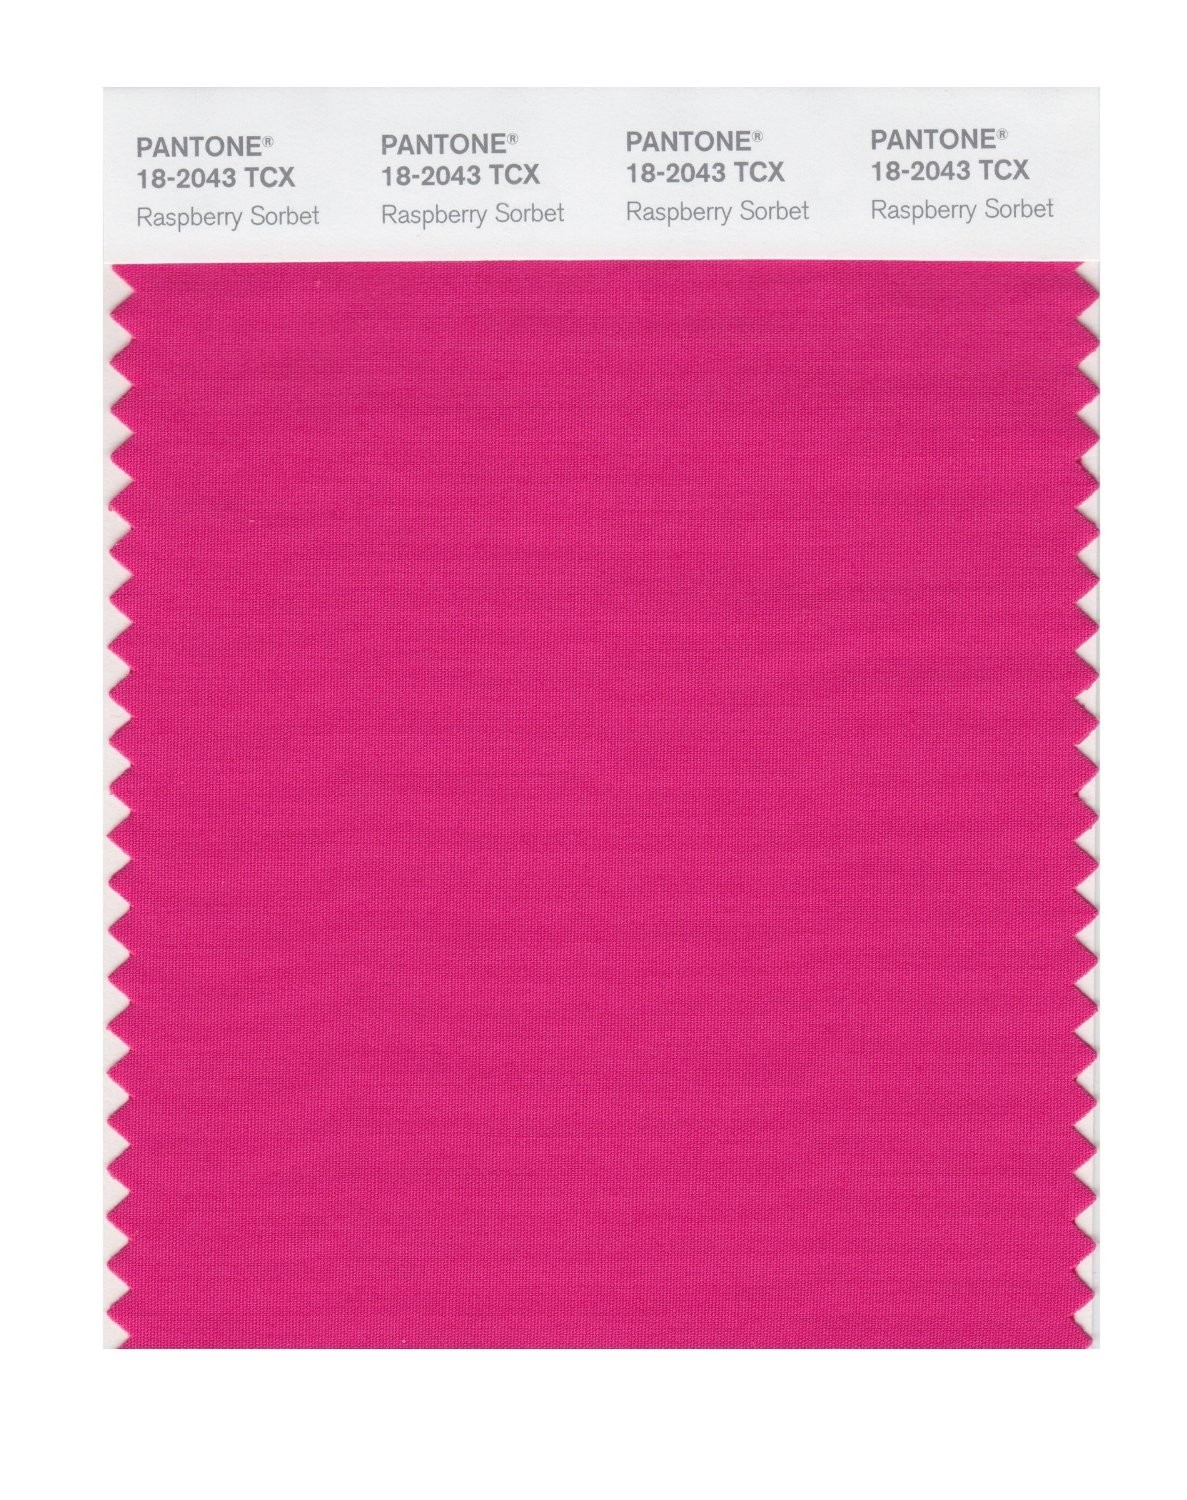 Pantone 18-2043 TCX Swatch Card Raspberry Sorbet